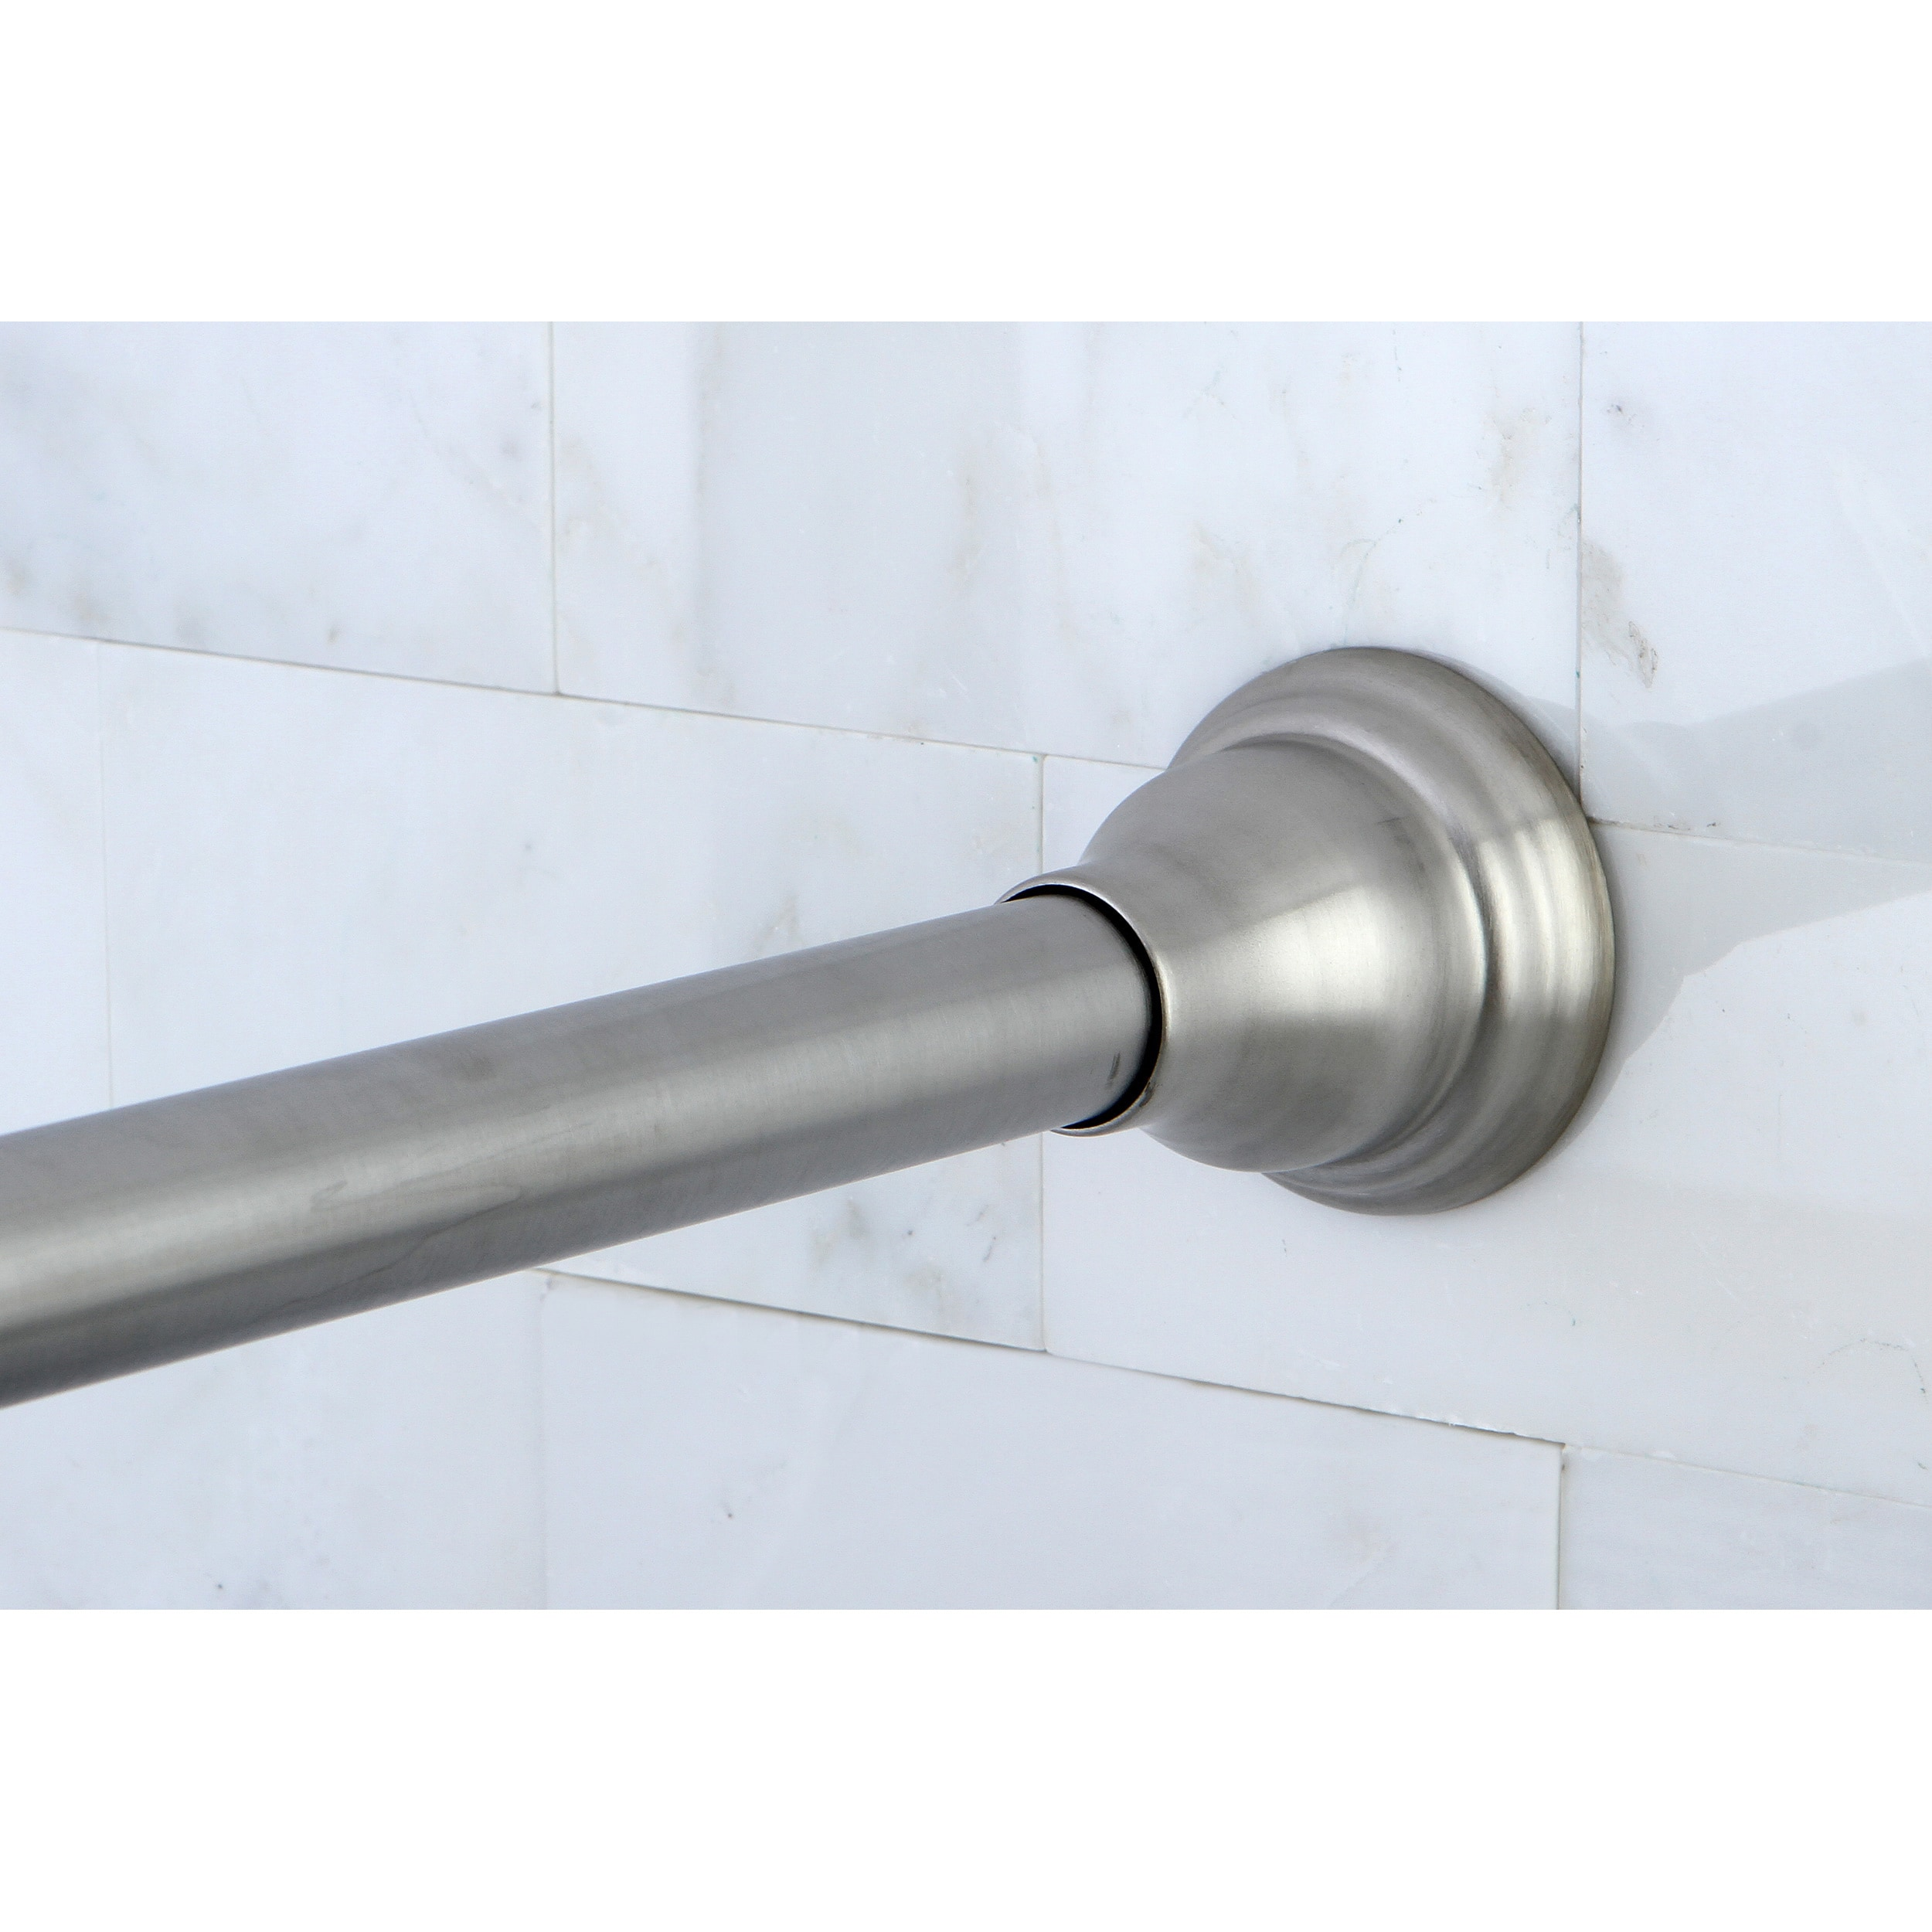 Satin Nickel Adjustable Shower Curtain Rod Overstock Shopping The Best Prices On Shower Rods